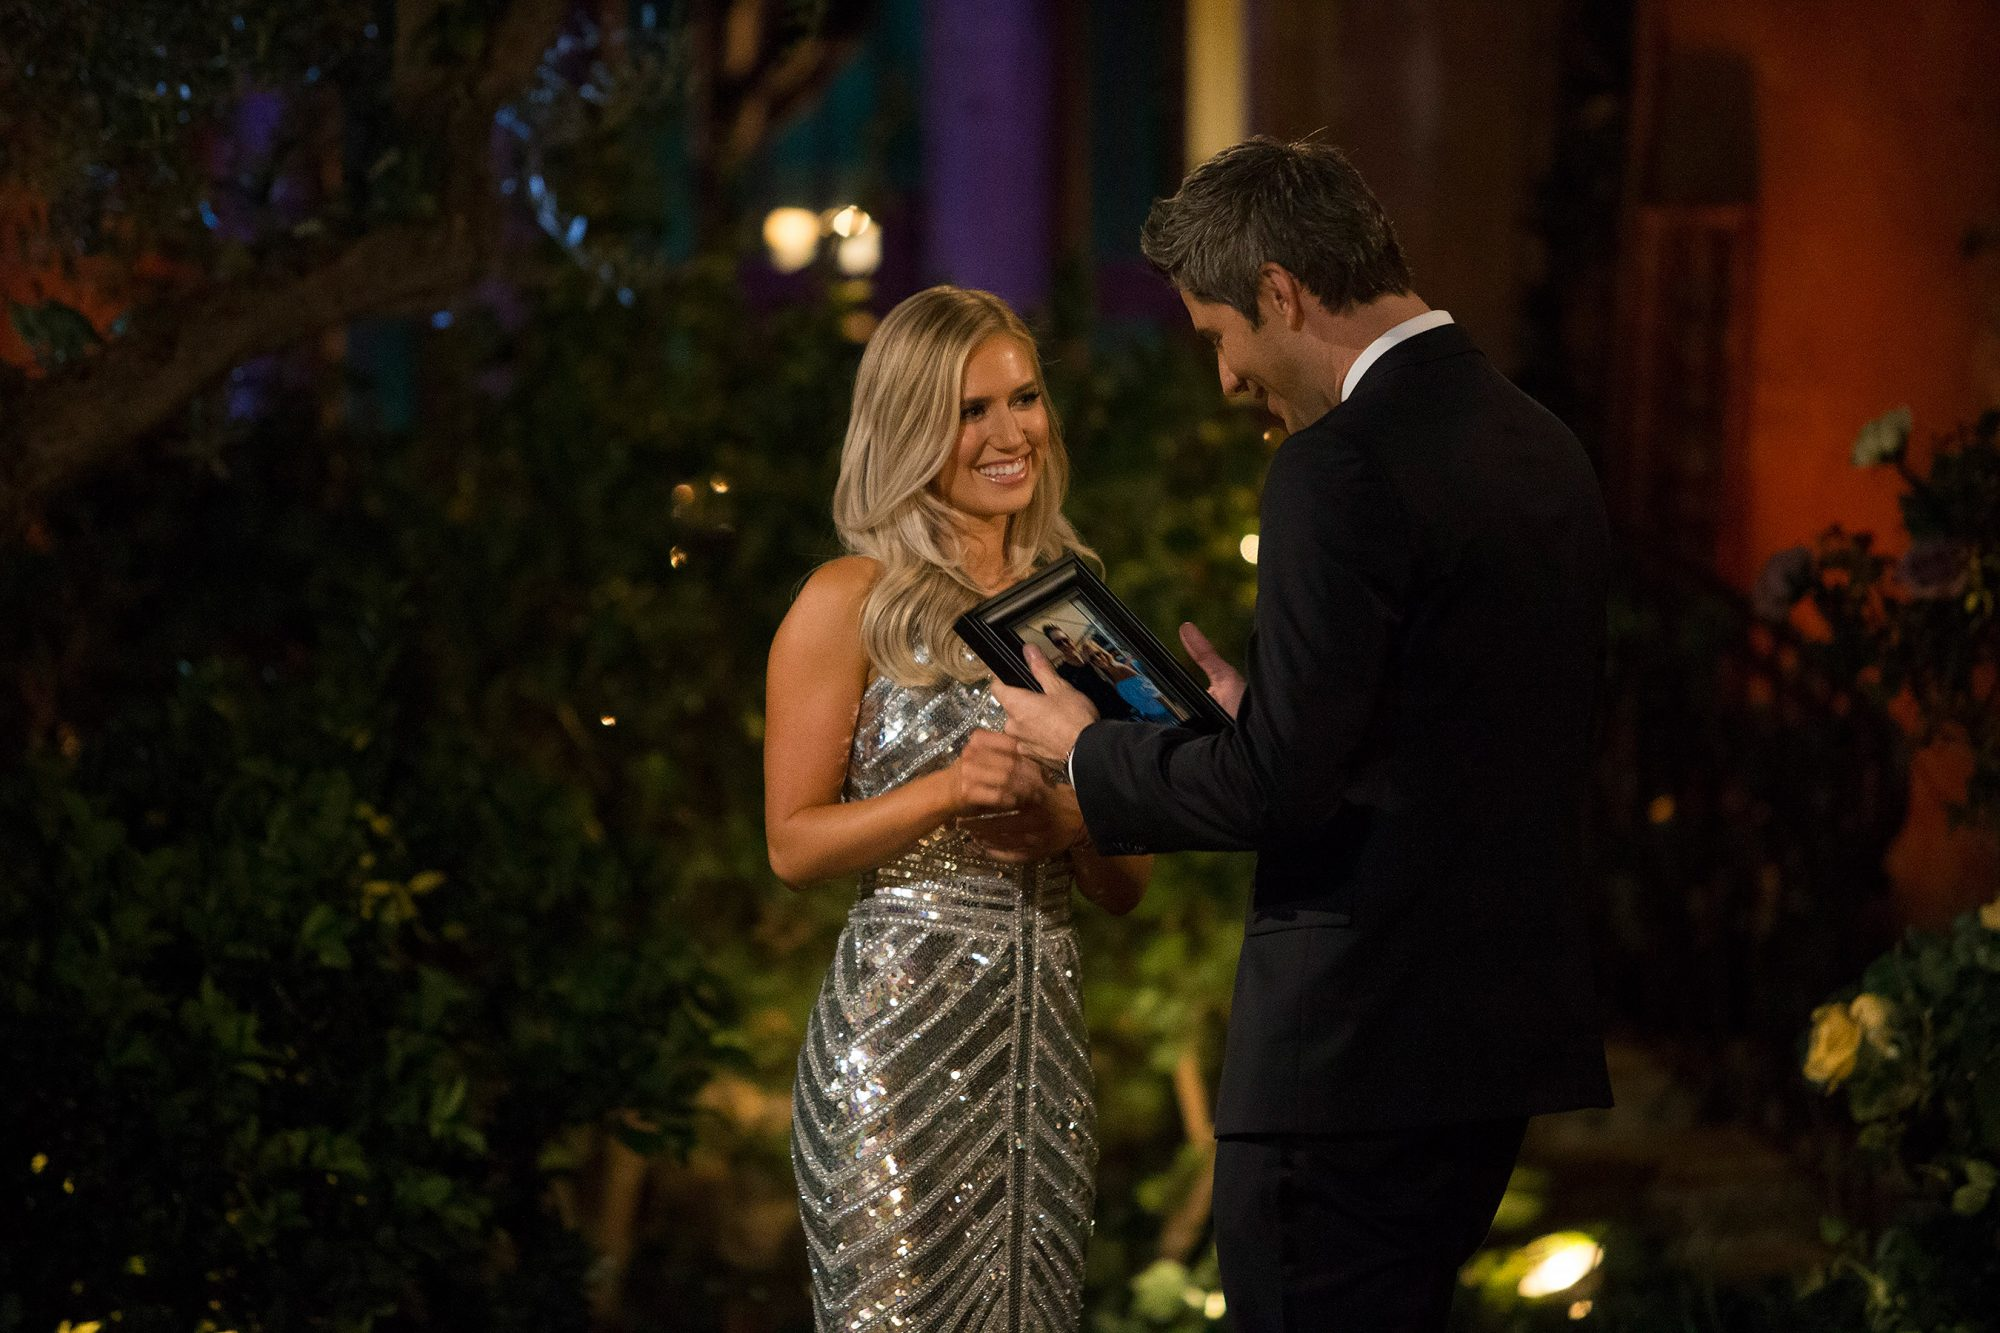 Before she ended up with Arie Luyendyk Jr., Lauren Burnham revealed upon exiting the limo that she had met him before. She gifted the race car driver a framed photo of that fateful day, and the rest is history.                             After Luyendyk initially chose Becca Kufrin for a fiancée, he broke things off with her (on television) and asked runner-up Burnham for her hand in marriage (also on television). The pair are now married and share a daughter, Alessi Ren.